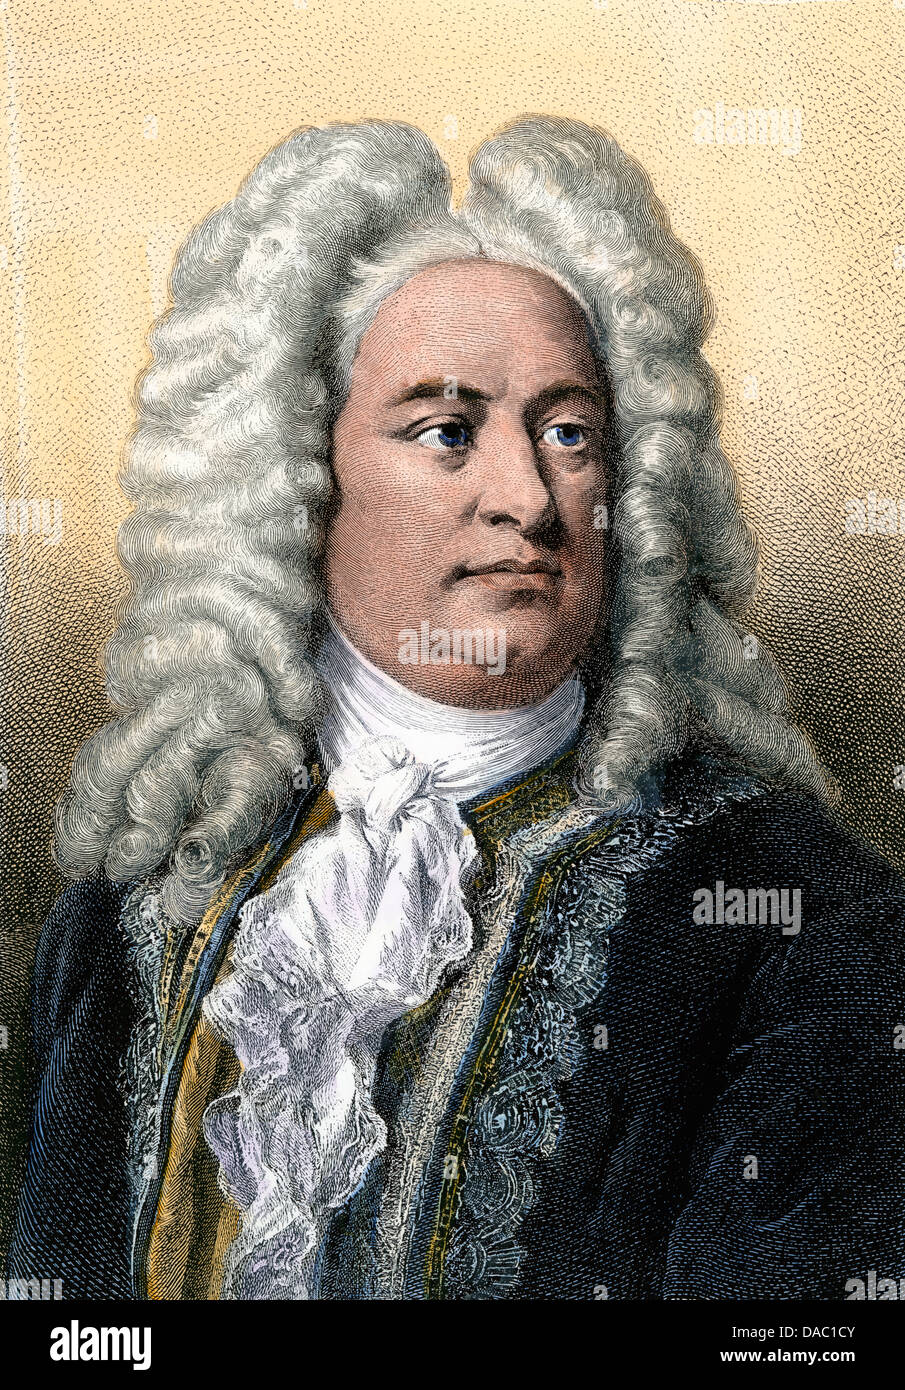 Portrait of composer Georg Friedrich Handel. Hand-colored engraving - Stock Image